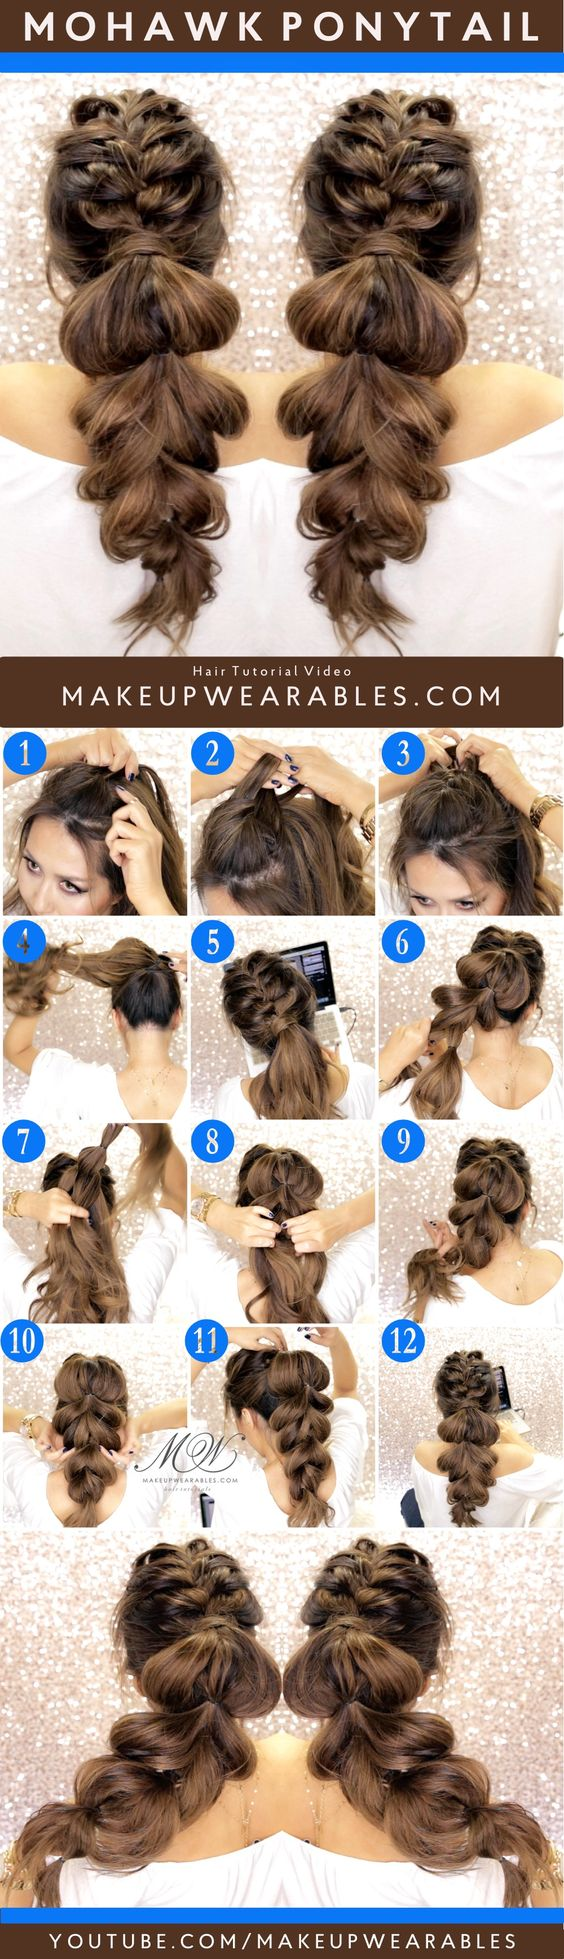 Cute Mohawk Braid Pony #Hairstyle | #hair #style